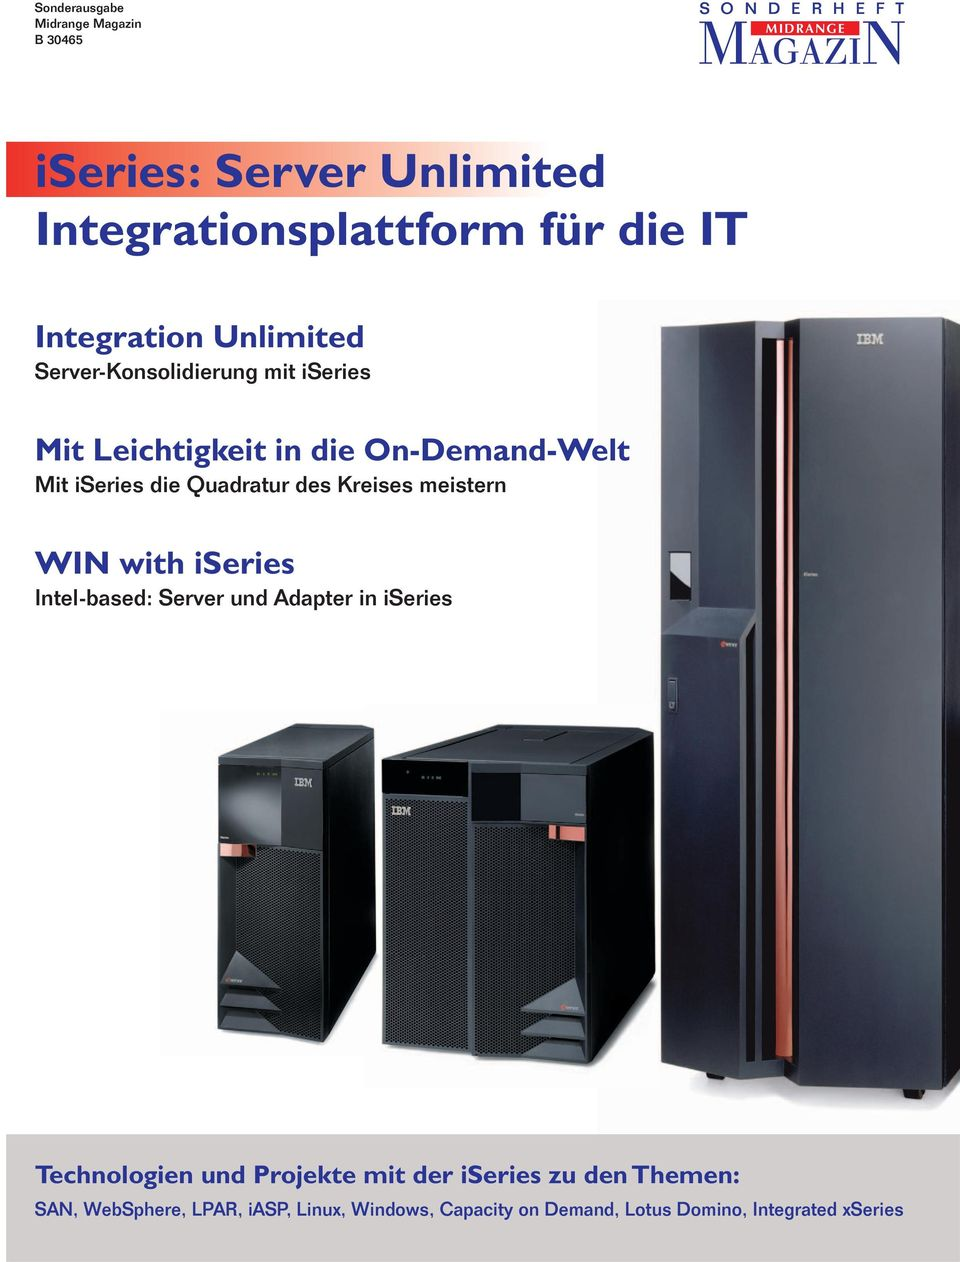 On-Demand-Welt Mit iseries die Quadratur des Kreises meistern WIN with iseries Intel-based: Server und Adapter in iseries